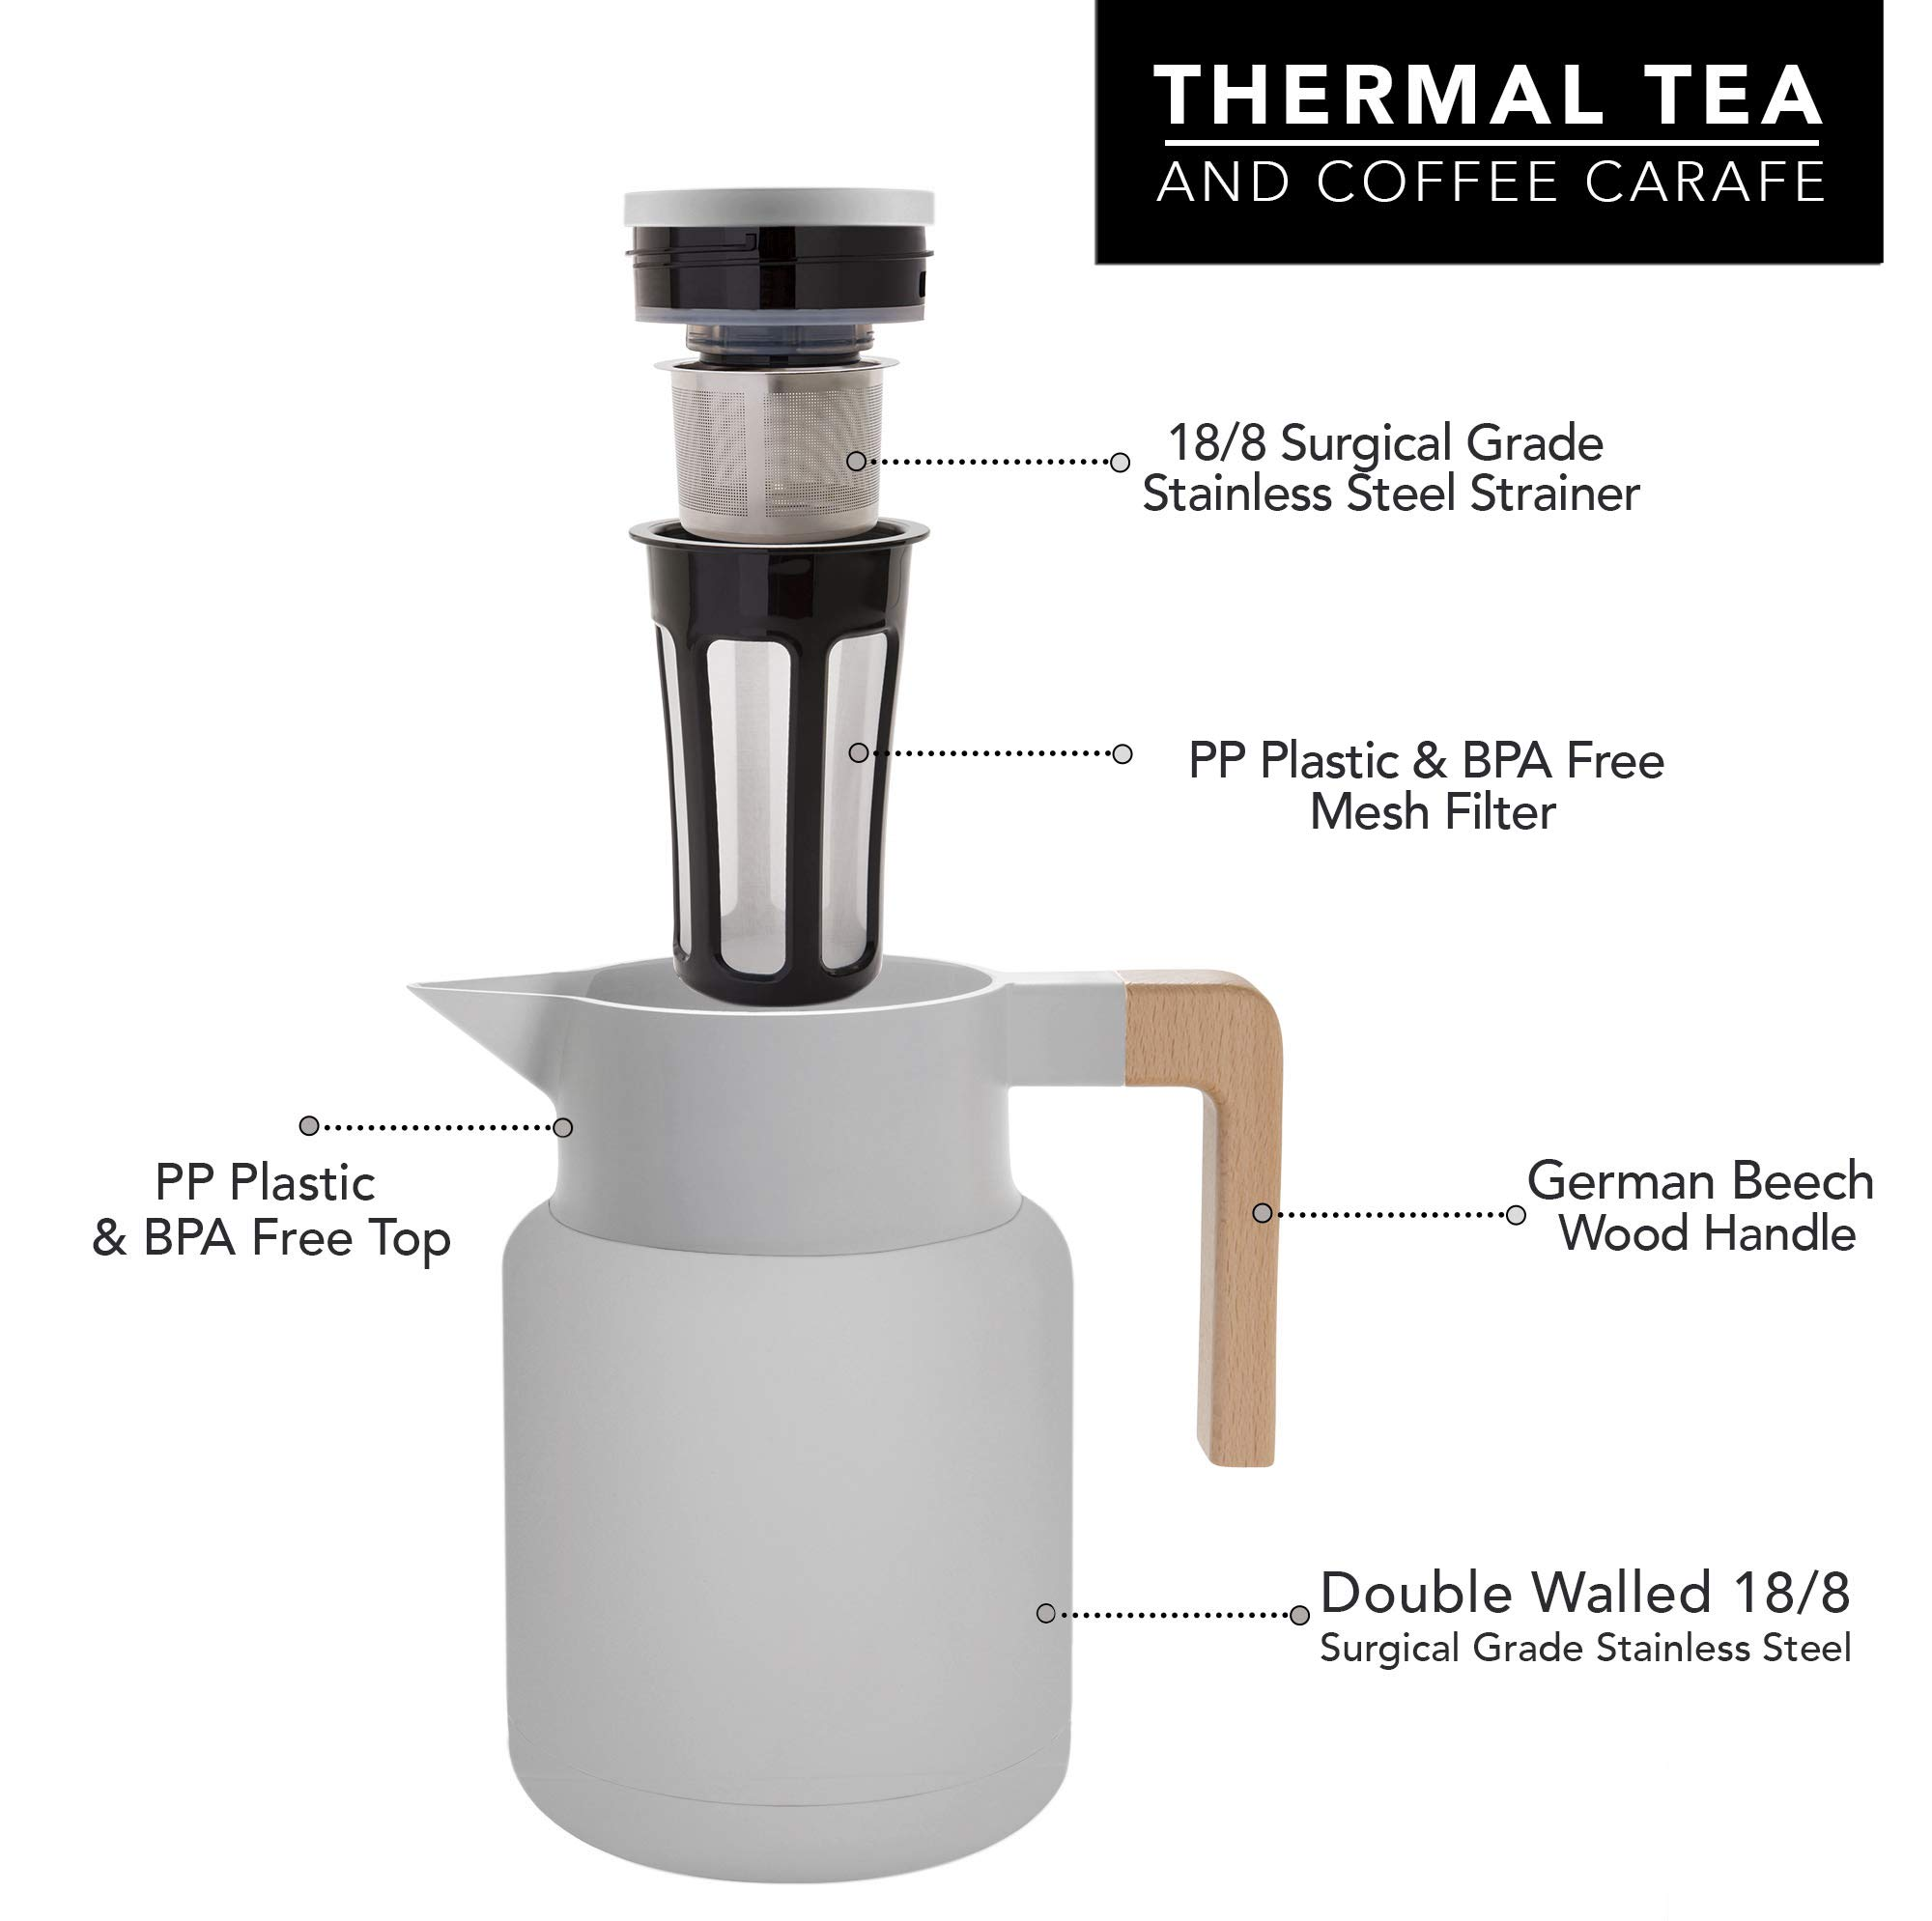 Large Thermal Coffee Carafe - Stainless Steel, Double Walled Thermal Pots For Coffee and Teas by Hastings Collective - Gray, Vacuum Carafes With Removable Tea Infuser and Strainer | 50 Oz. by Hastings Collective (Image #3)